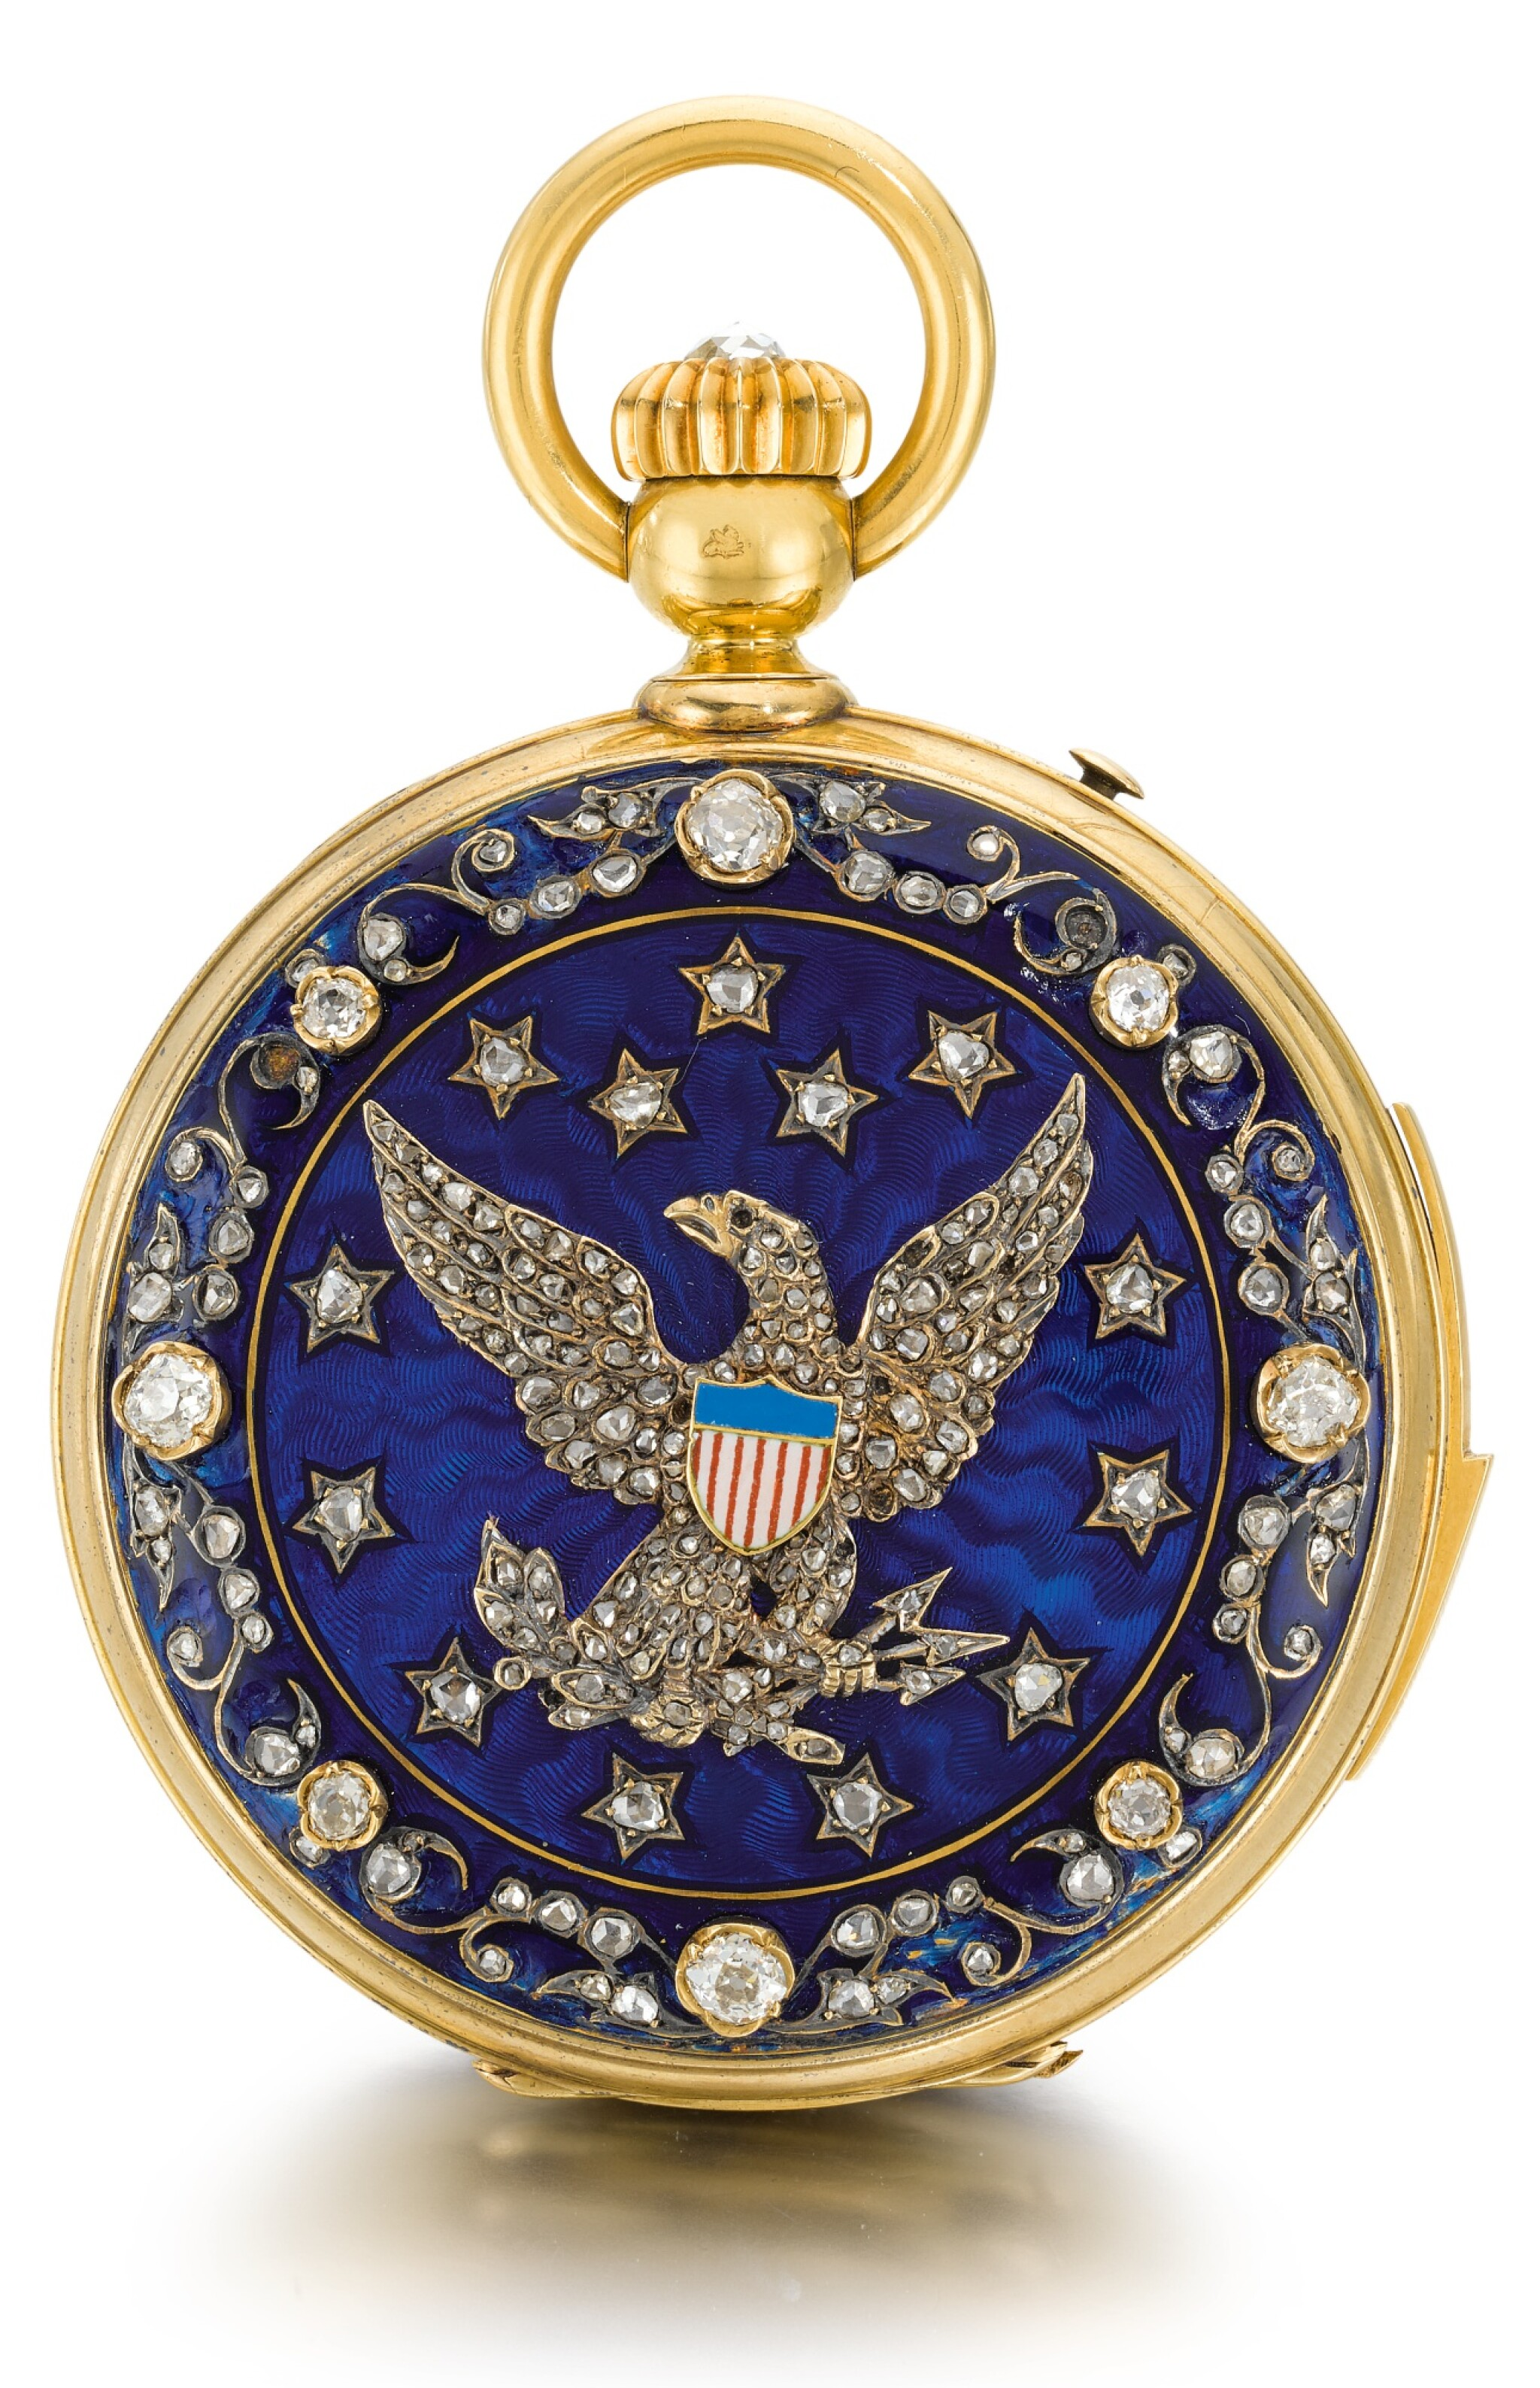 View full screen - View 1 of Lot 26. SWISS  [ 瑞士製]    A GOLD AND ENAMEL HUNTING CASED MINUTE REPEATING KEYLESS LEVER WATCH WITH AMERICAN EAGLE AND CRESCENT STAR MOTIFS  CIRCA 1865, NO. 17738  [ 黃金畫琺瑯三問懷錶飾美國鷹及星月主題圖案,年份約1865,編號17738].